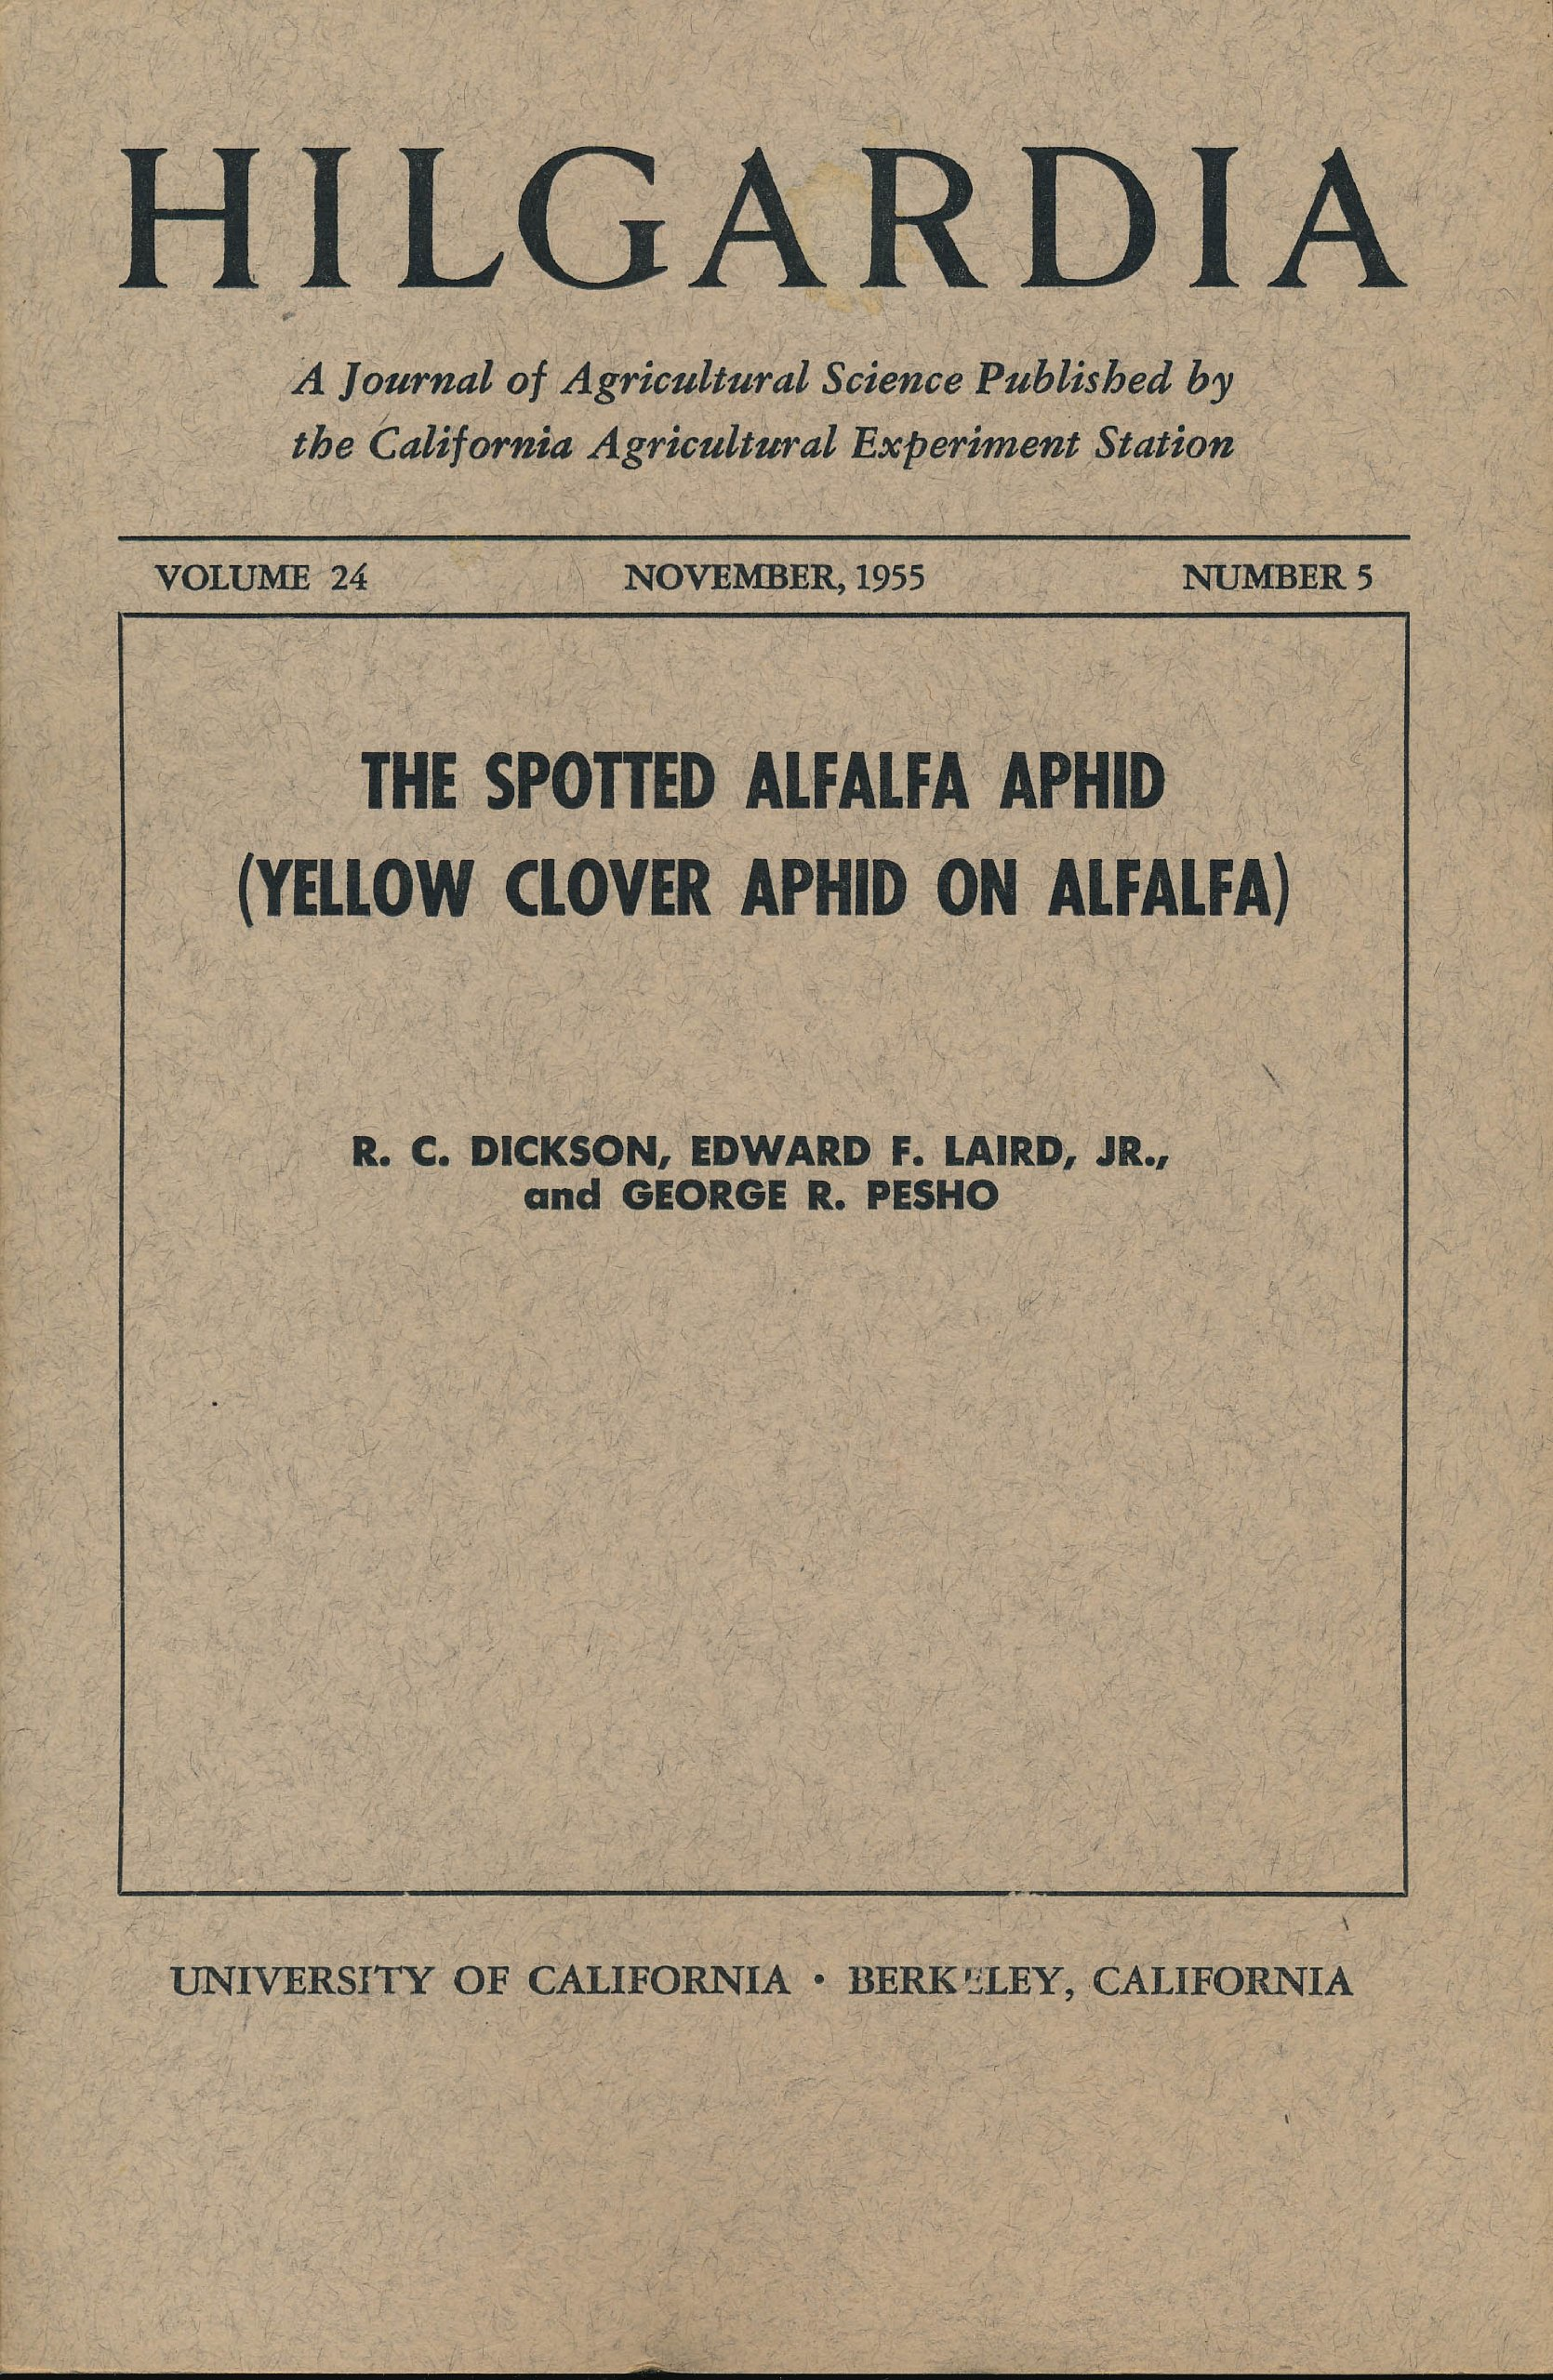 The Spotted Alfalfa Aphid (Yellow Clover Aphid on Alfalfa